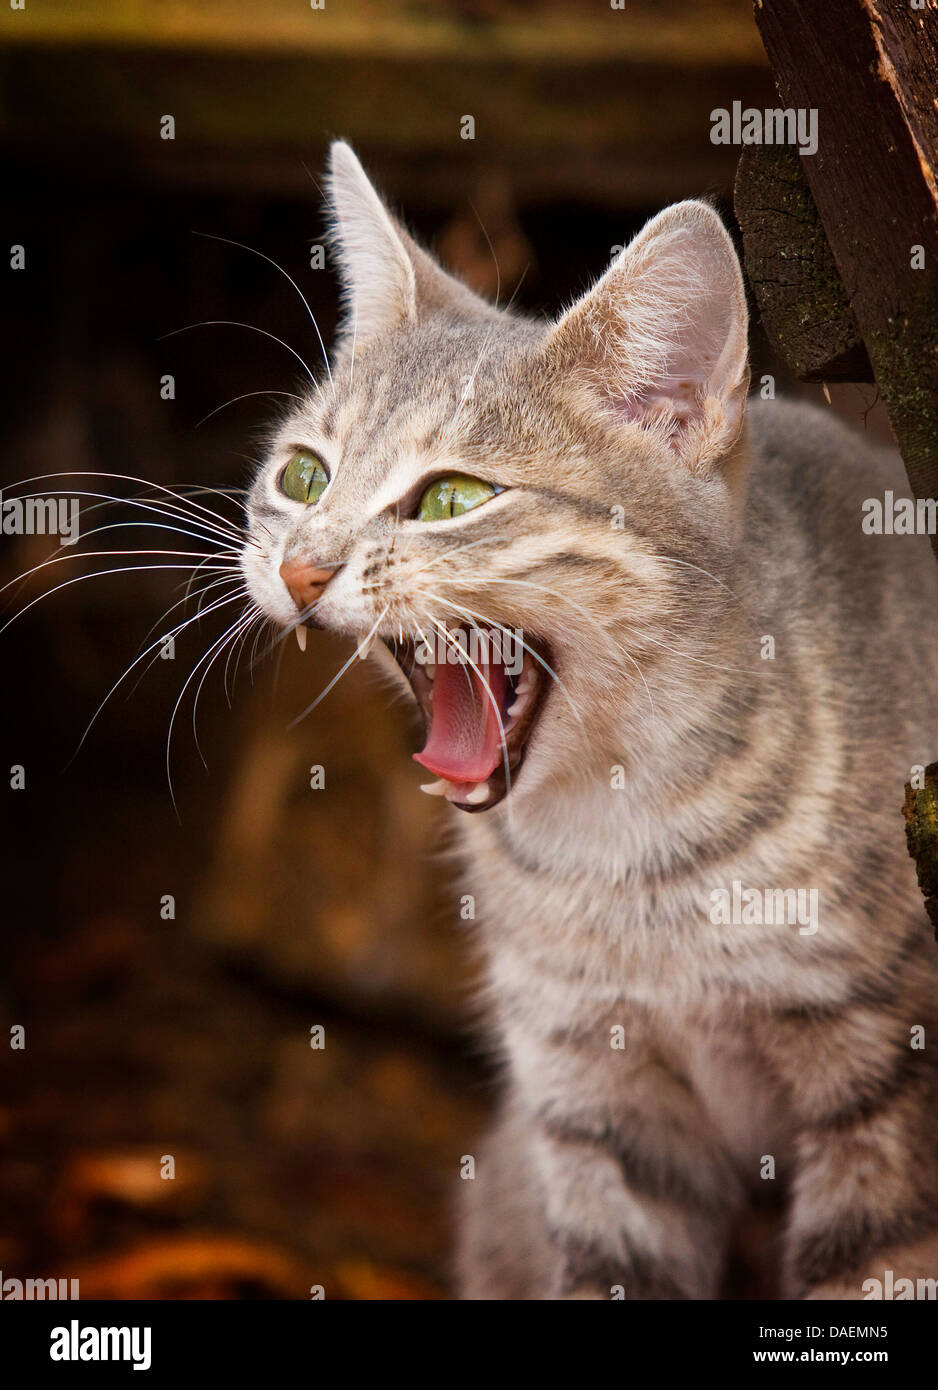 domestic cat, house cat (Felis silvestris f. catus), snarling disgusted, Germany - Stock Image